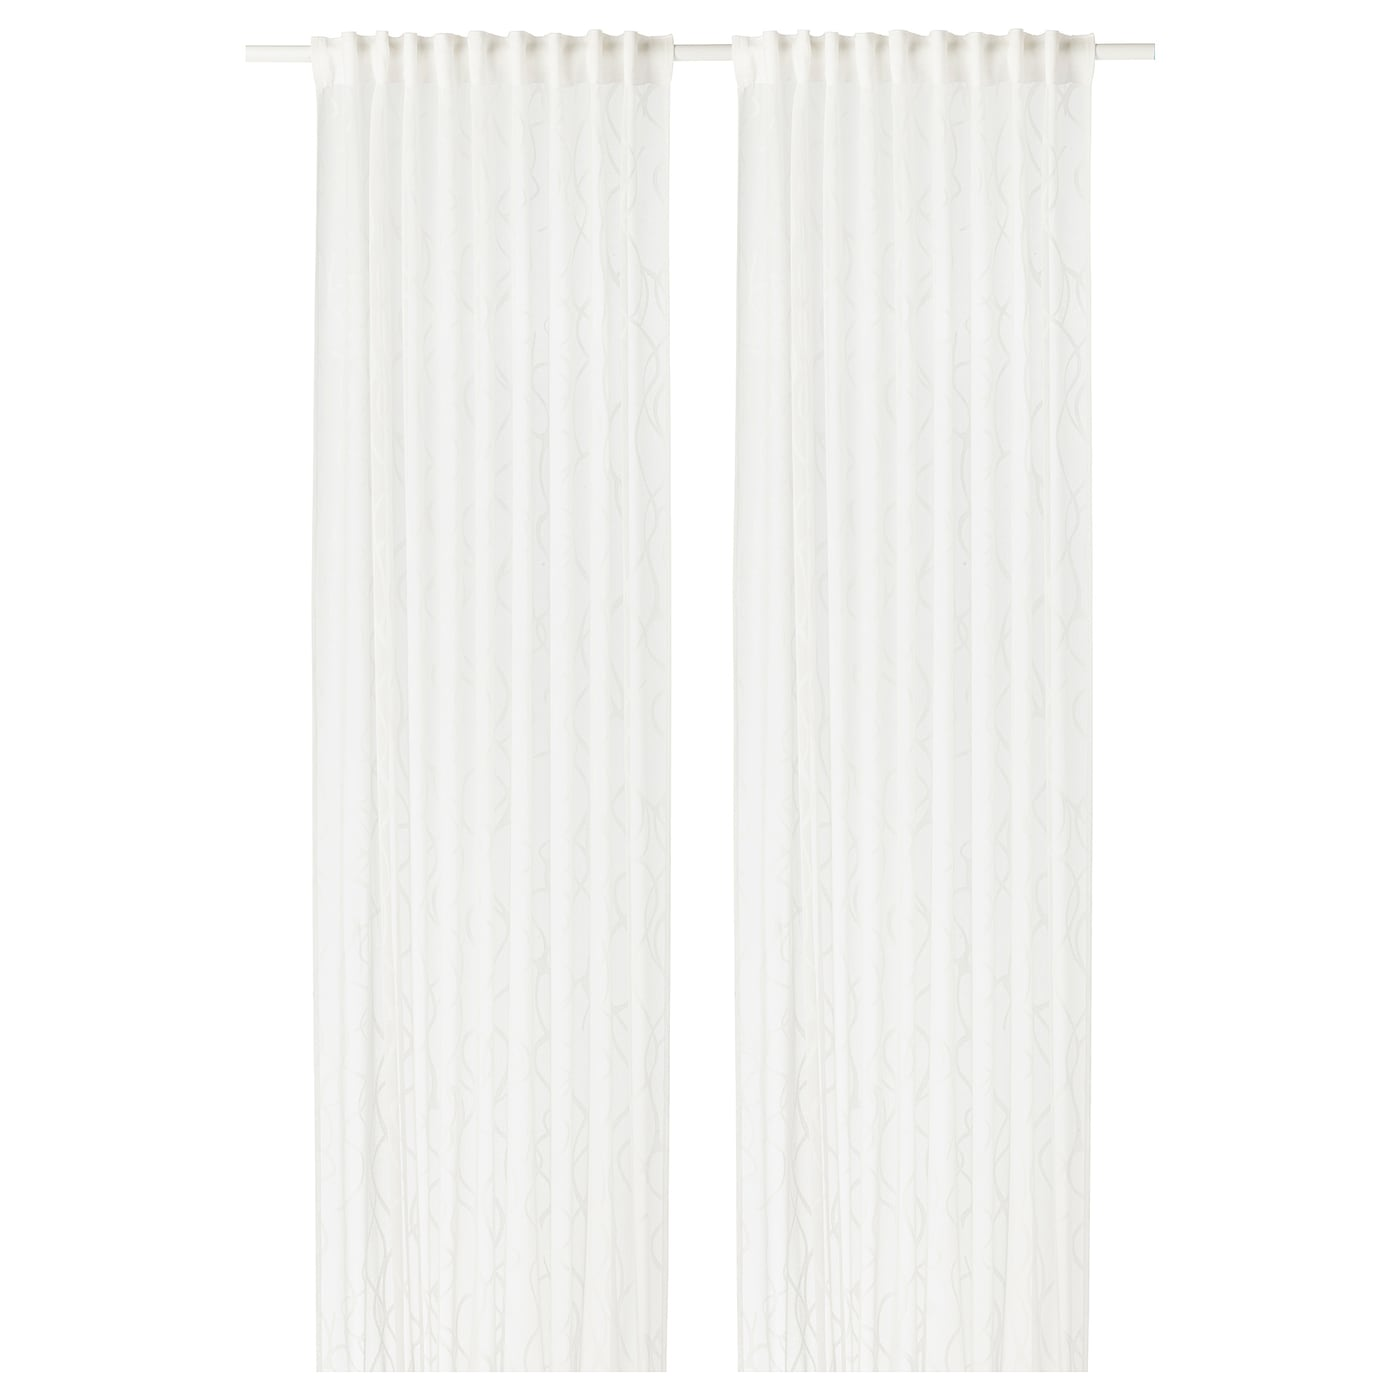 IKEA SPARVÖRT sheer curtains, 1 pair The curtains can be used on a curtain rod or a curtain track.